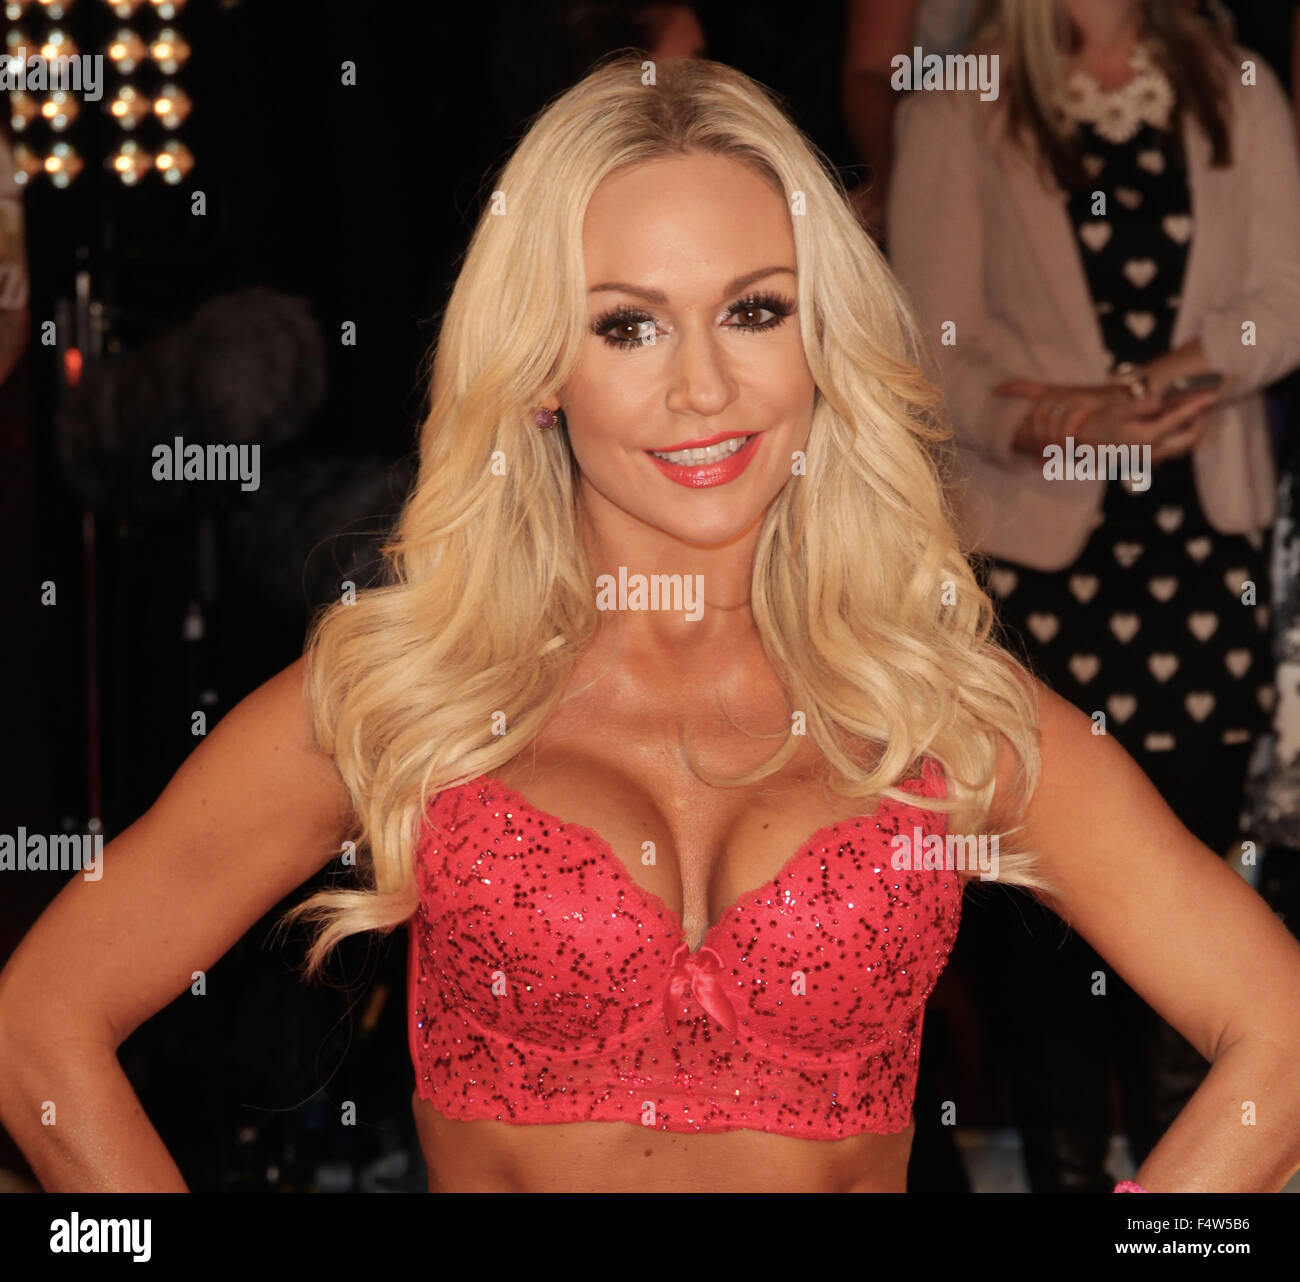 Borehamwood, UK, 1st Sep 2015: Kristina Rihanoff attends the Strictly Come Dancing - red carpet launch at BBC Elstree - Stock Image